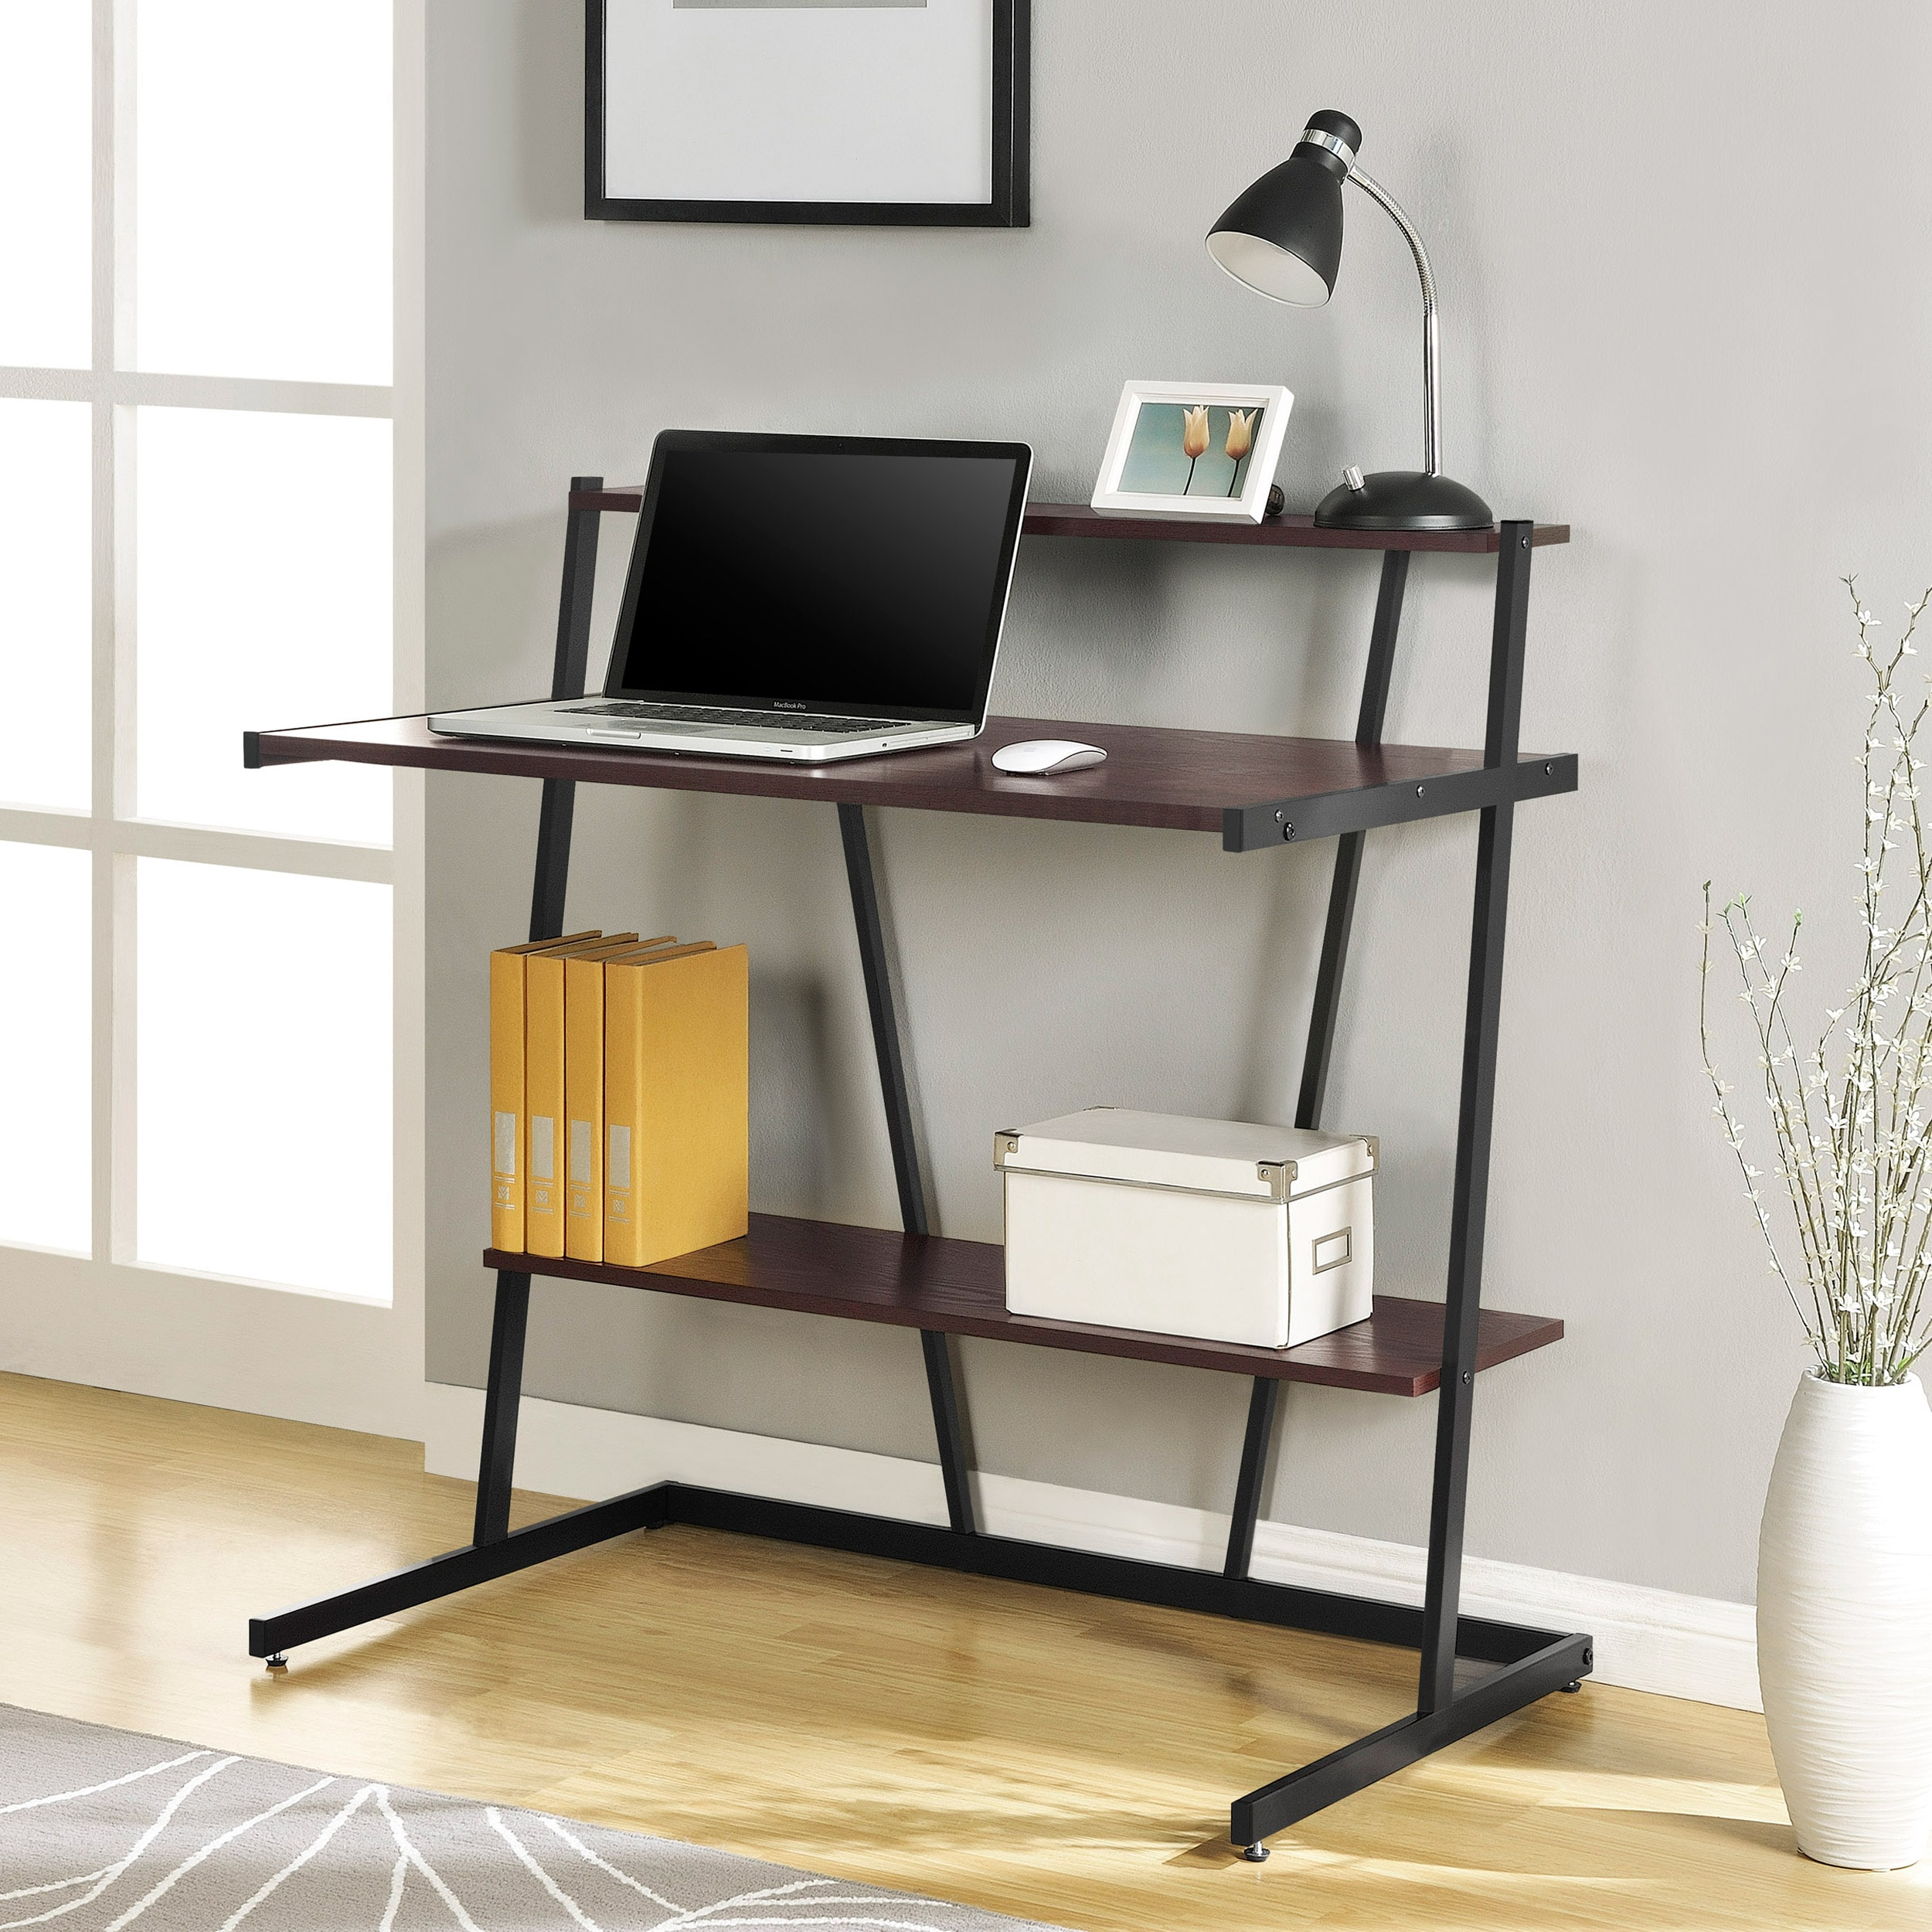 Altra Compact Cherry Finish Computer Desk with Shelf at Sears.com